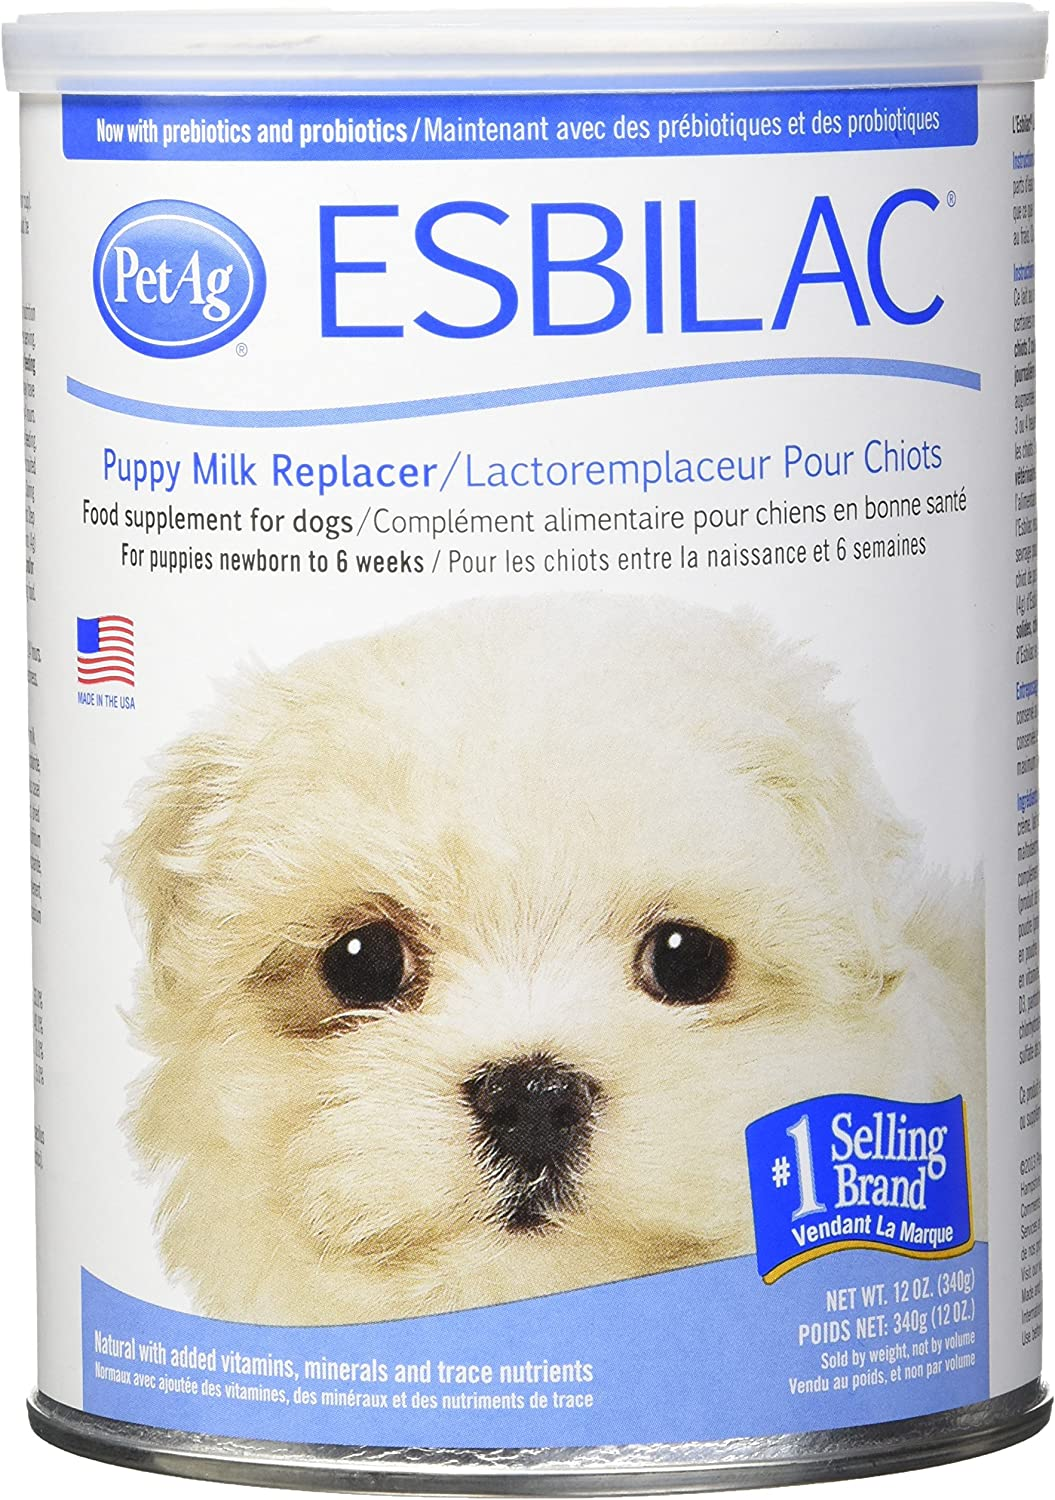 Esbilac Powder Milk Reperter for Puppies *Dogs 350